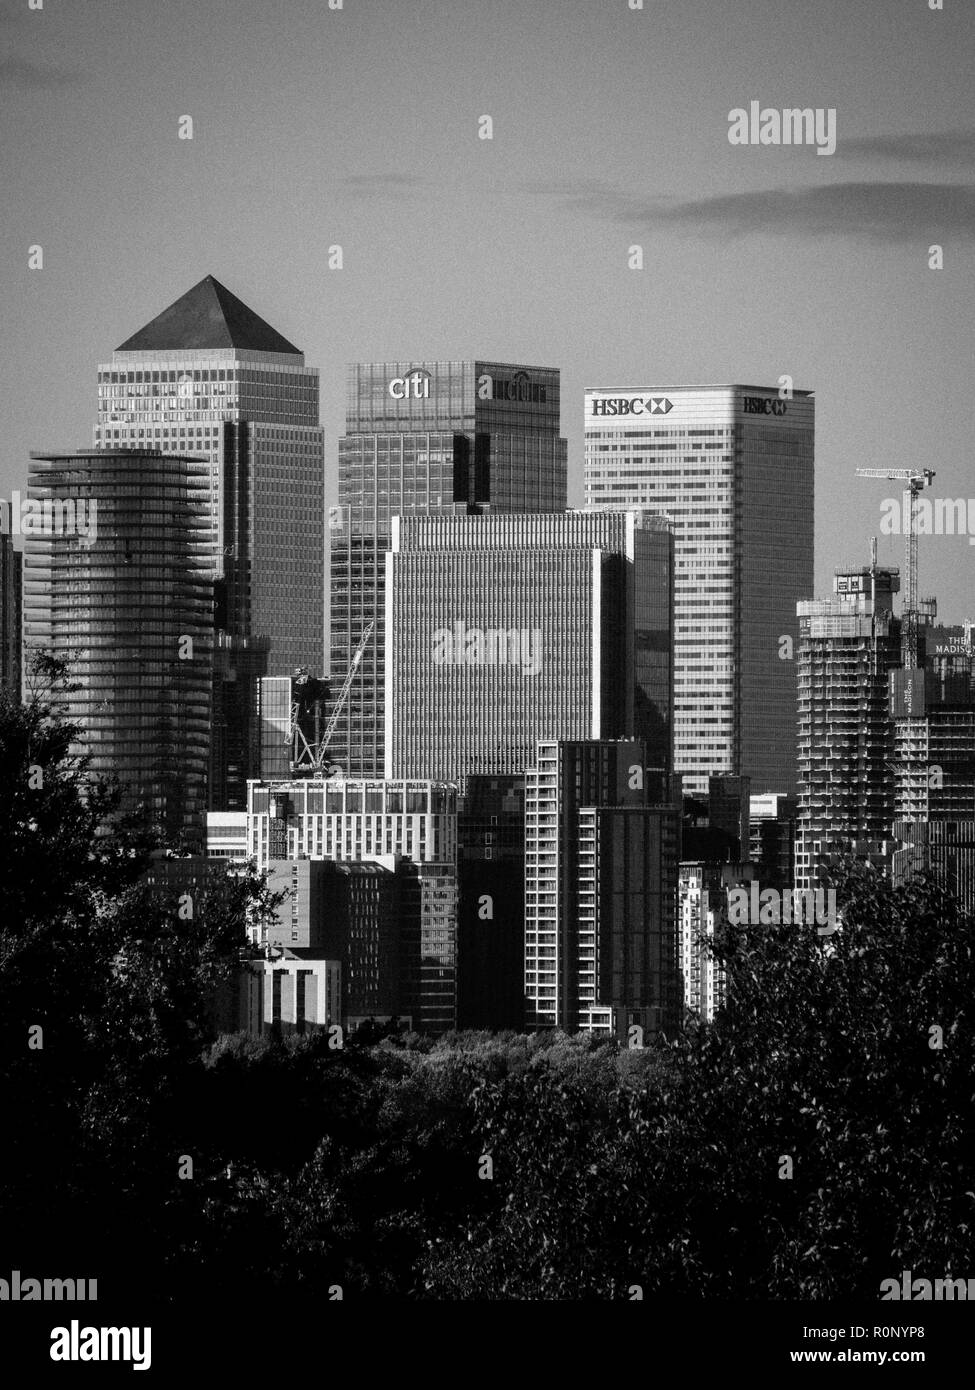 Canary Wharf on Isle of Dogs, London Docklands Viewed from, Greenwich Park, London, England, UK, GB. - Stock Image